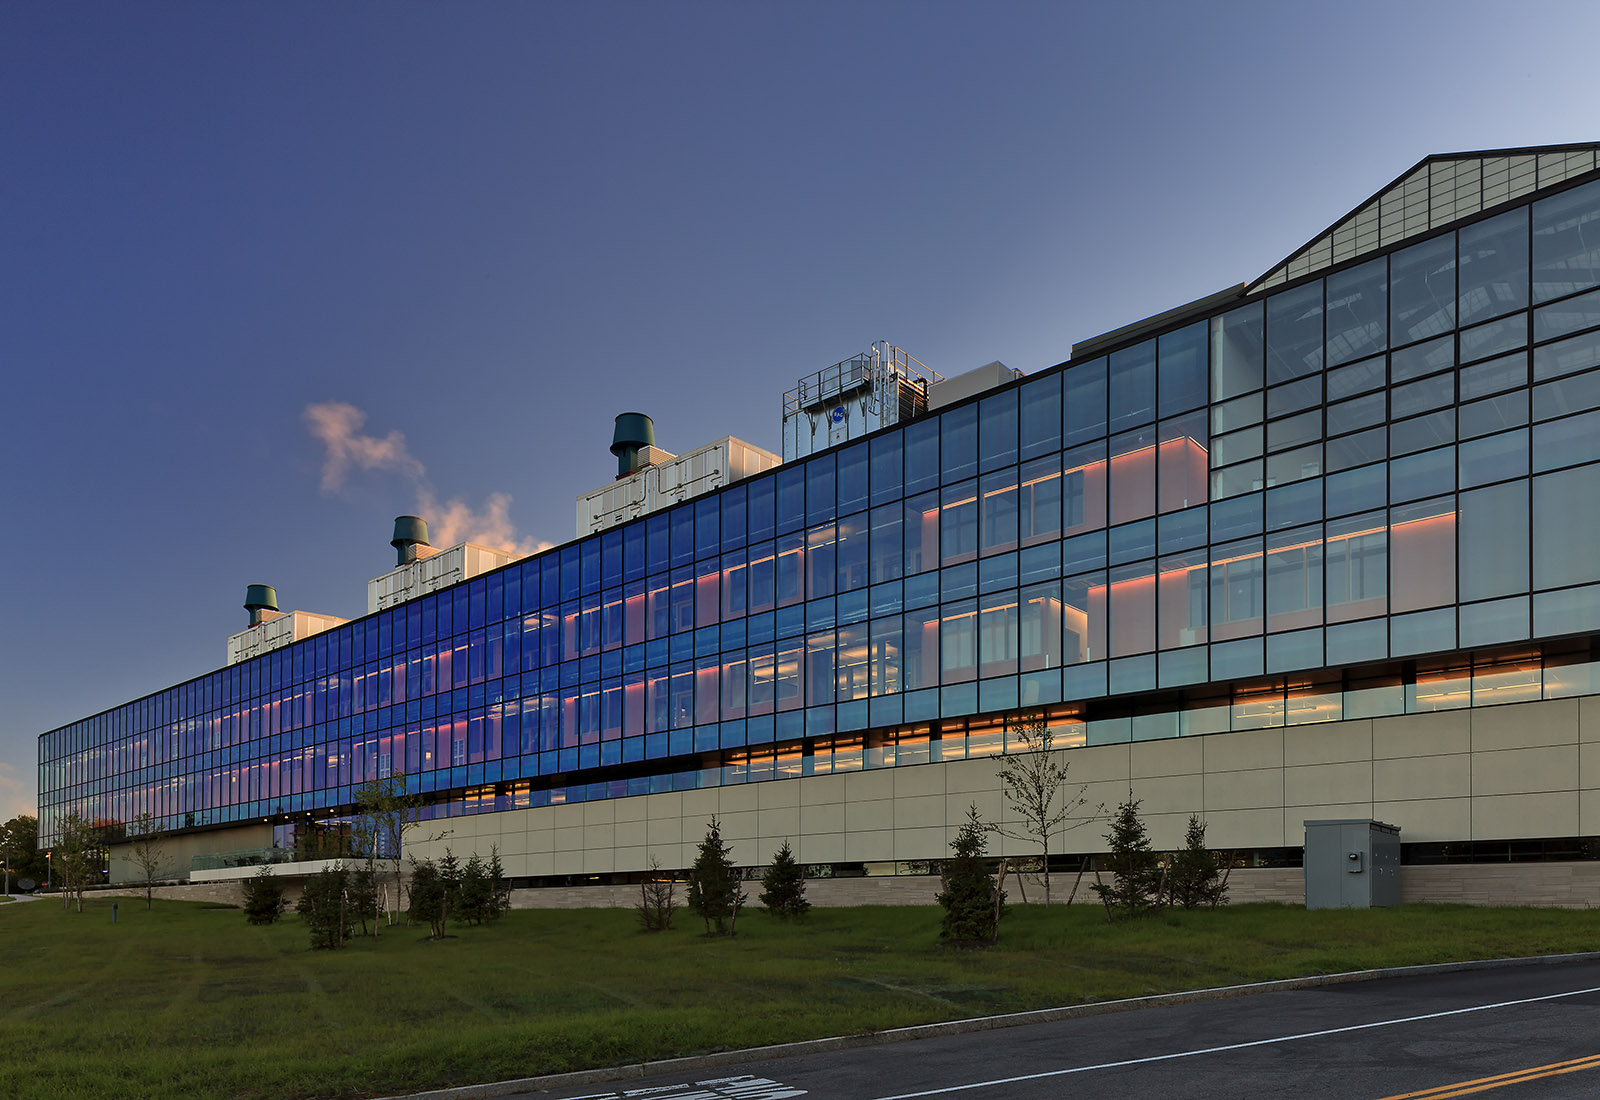 New Science Center Construction Project, Hudson Valley Community College U.W. Marx